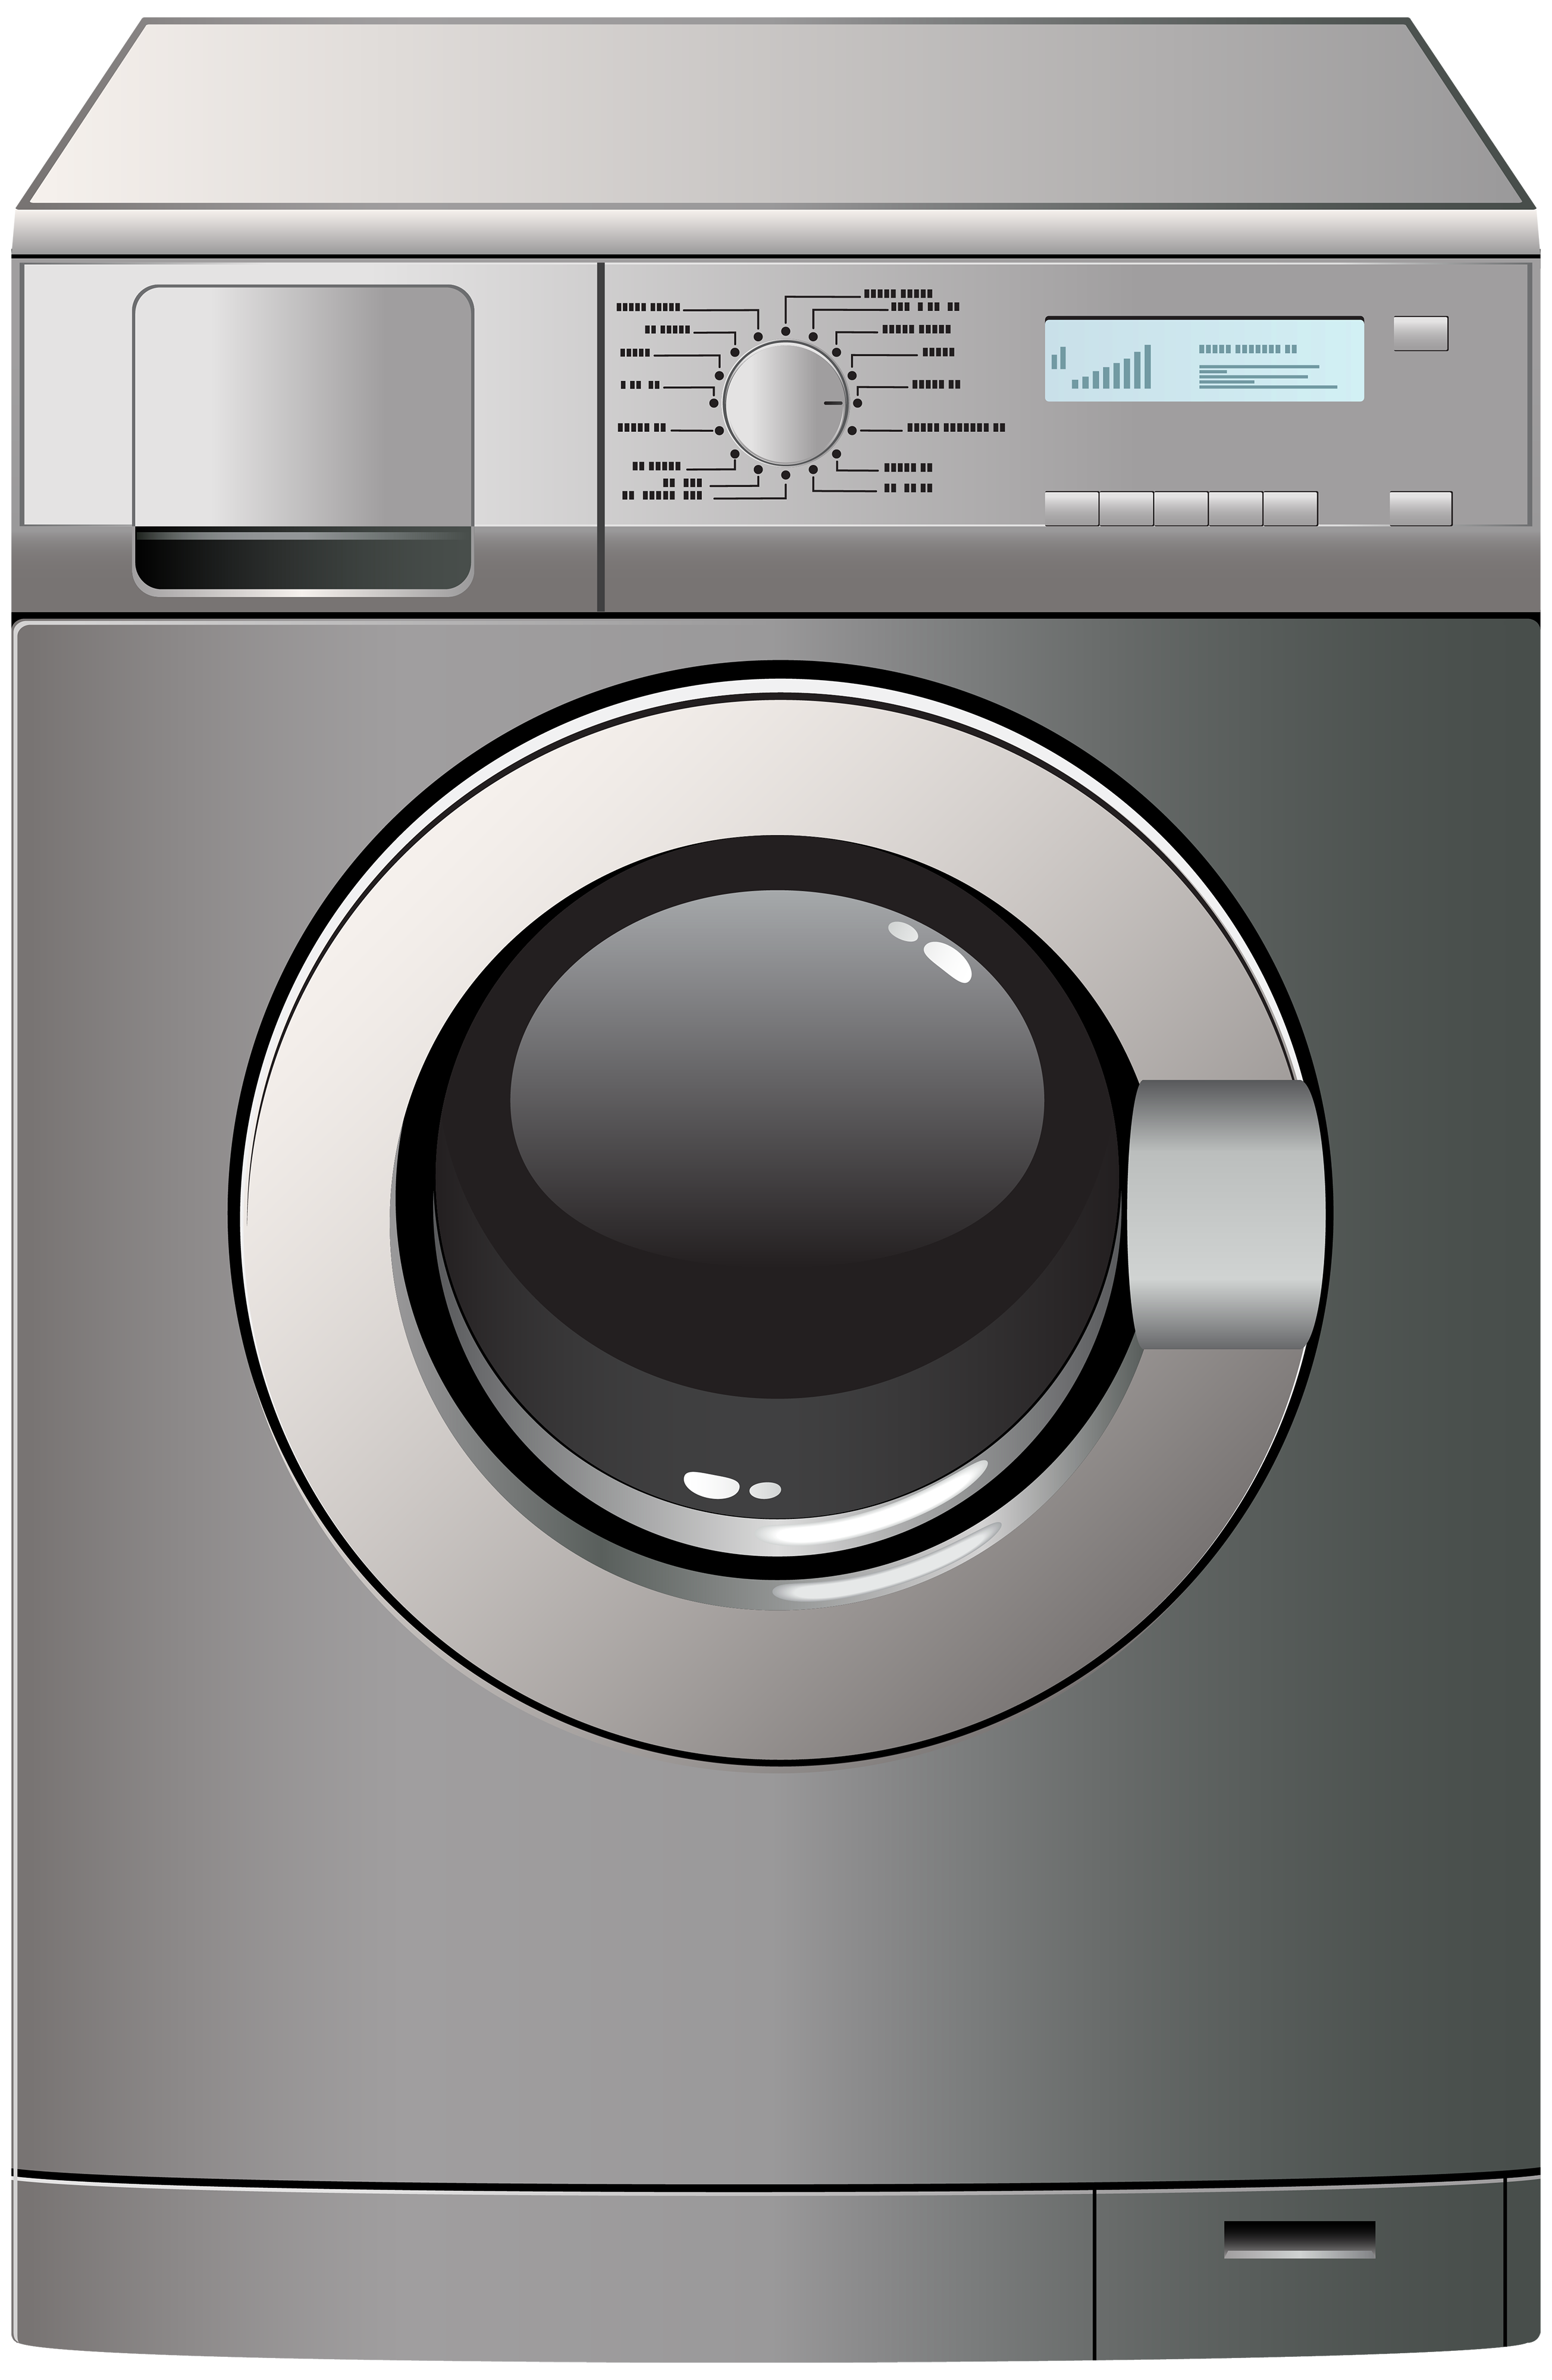 Washing machine clipart images image black and white stock Washing Machine PNG Clipart - Best WEB Clipart image black and white stock